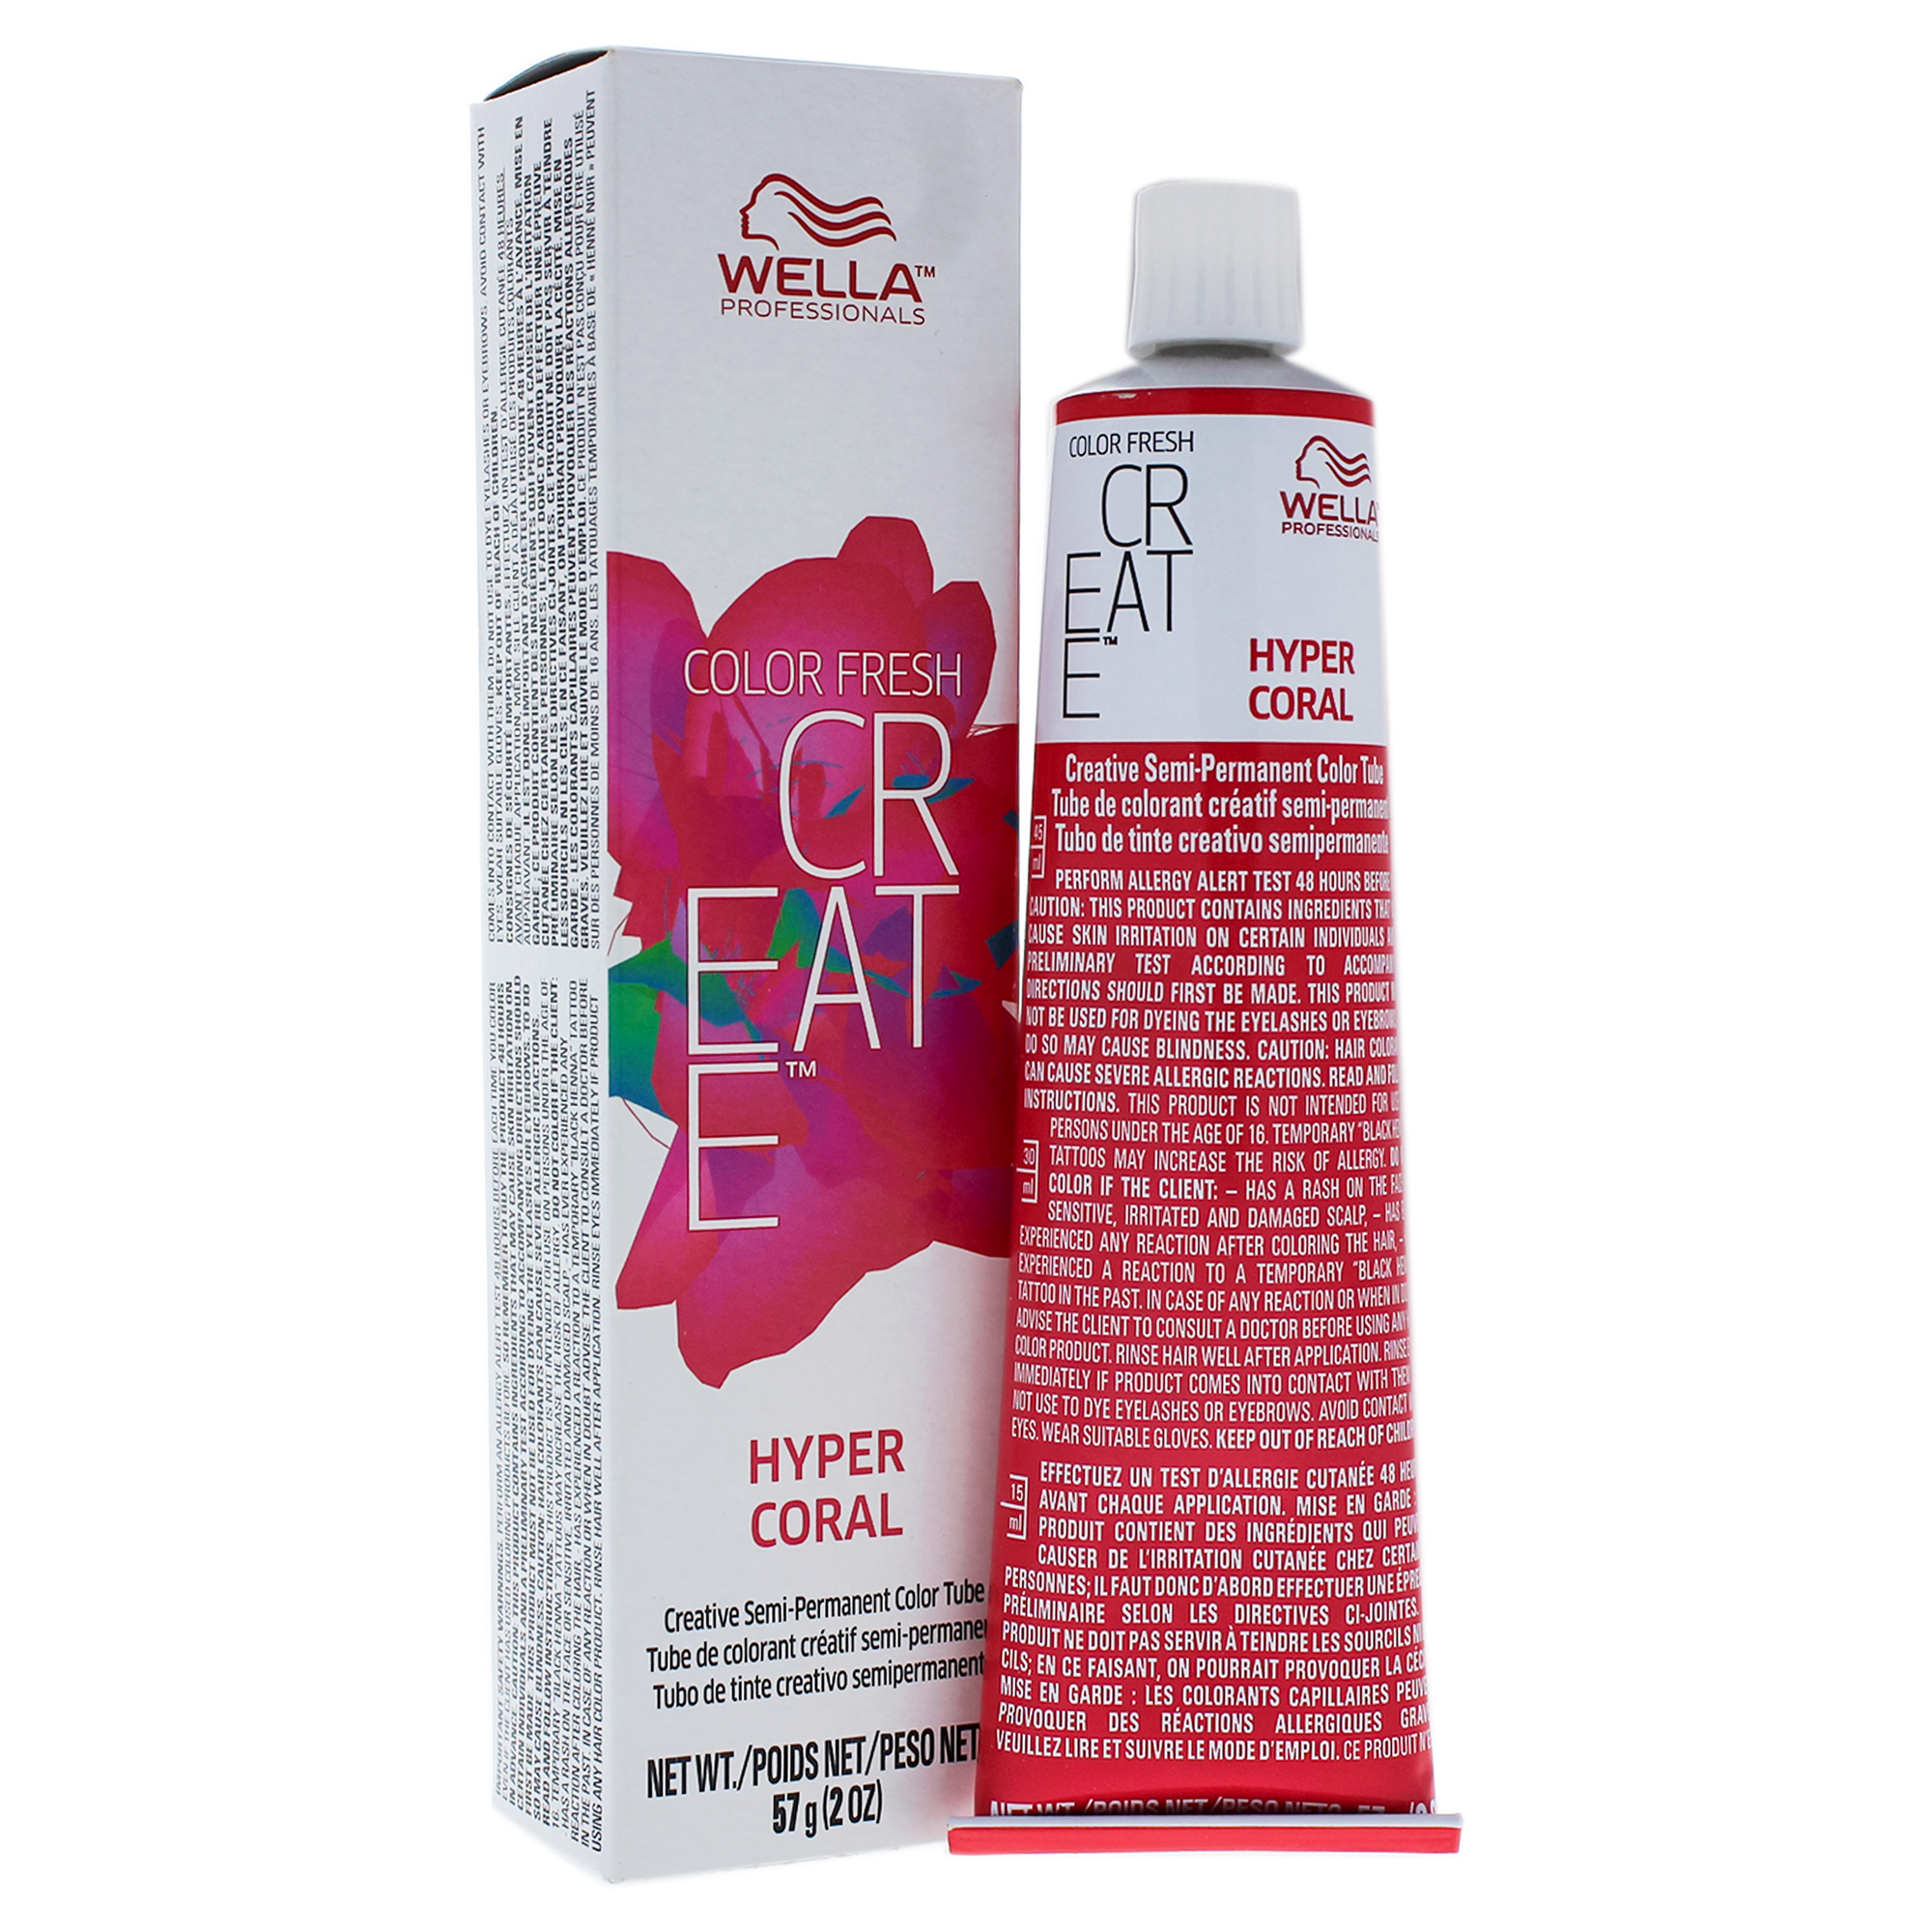 Color Fresh Create Semi-Permanent Color - Hyper Coral by Wella for Women - 2 oz Hair Color